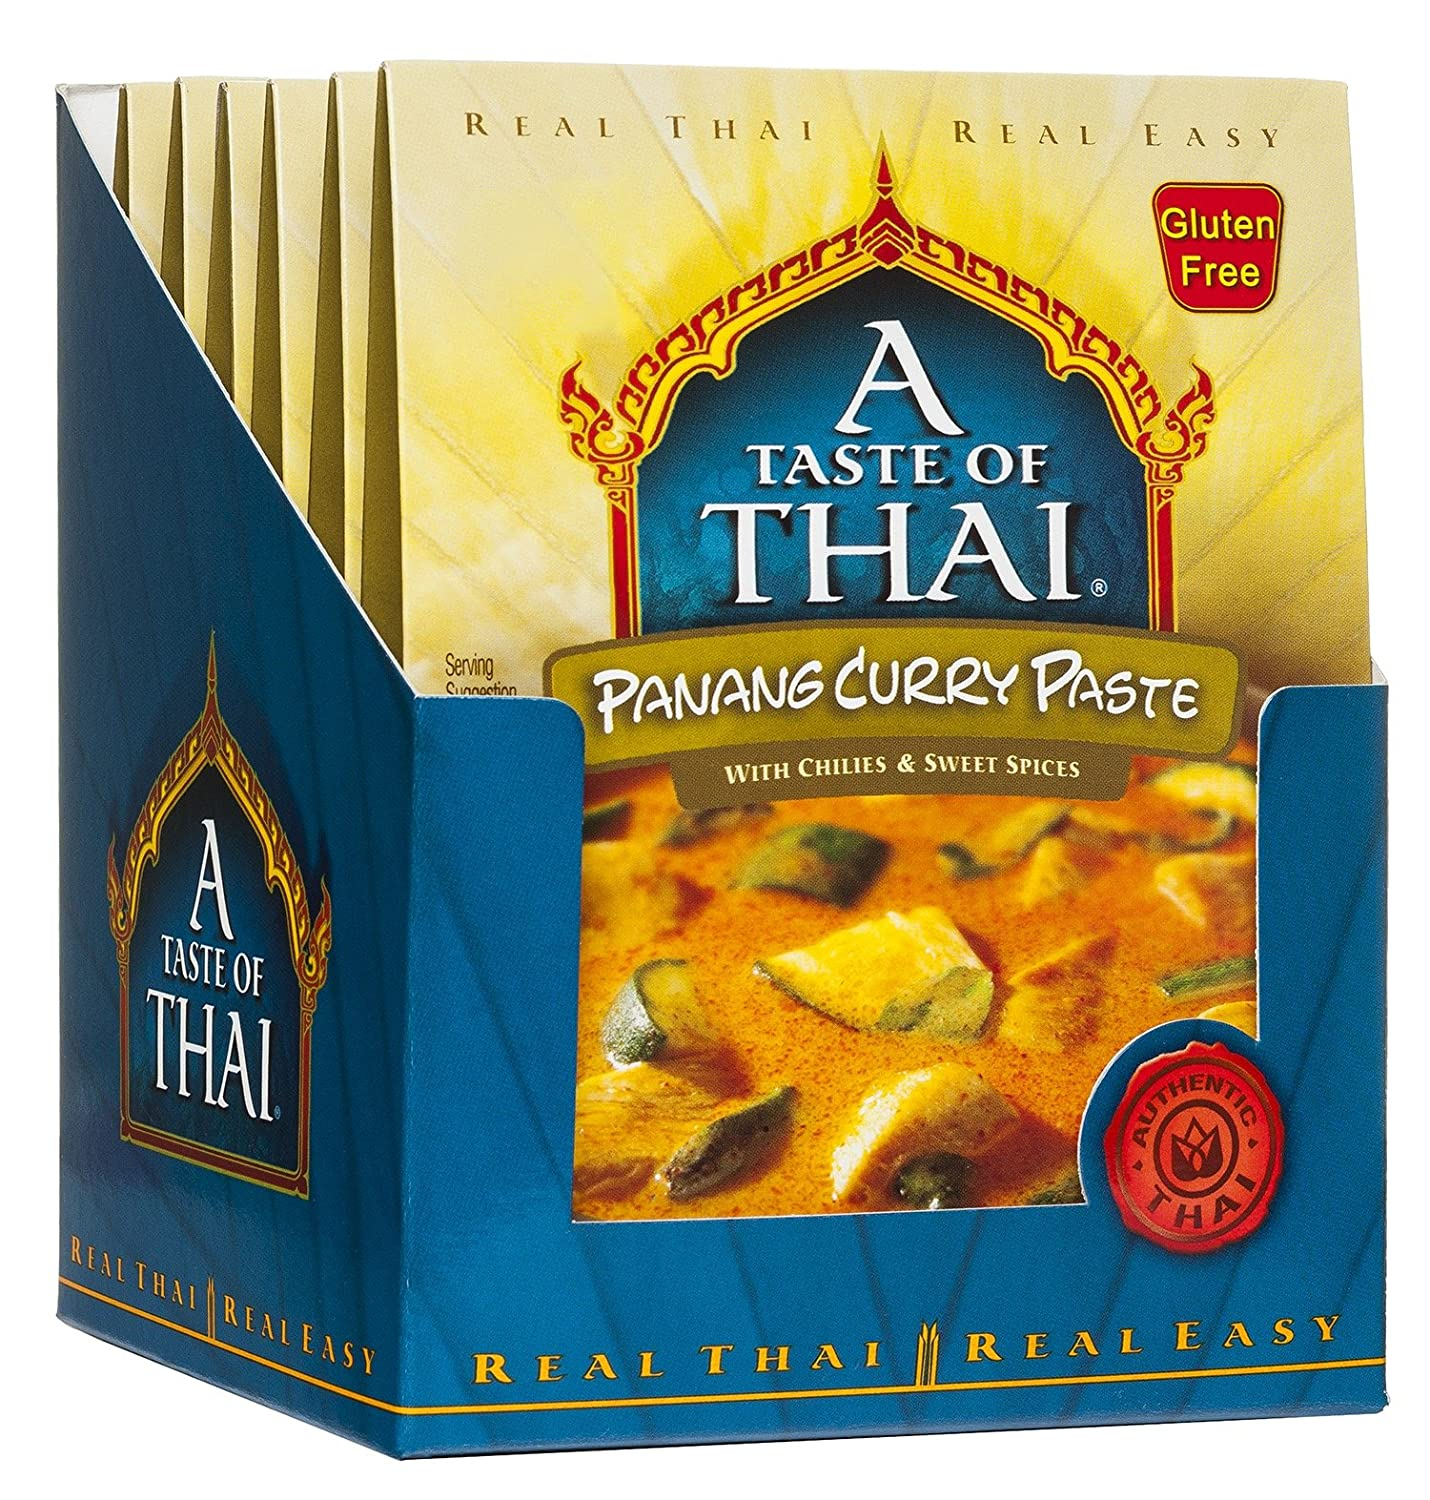 A Taste of Thai Curry Pastes A Taste of Thai Panang 1.75 Oz-6 Count